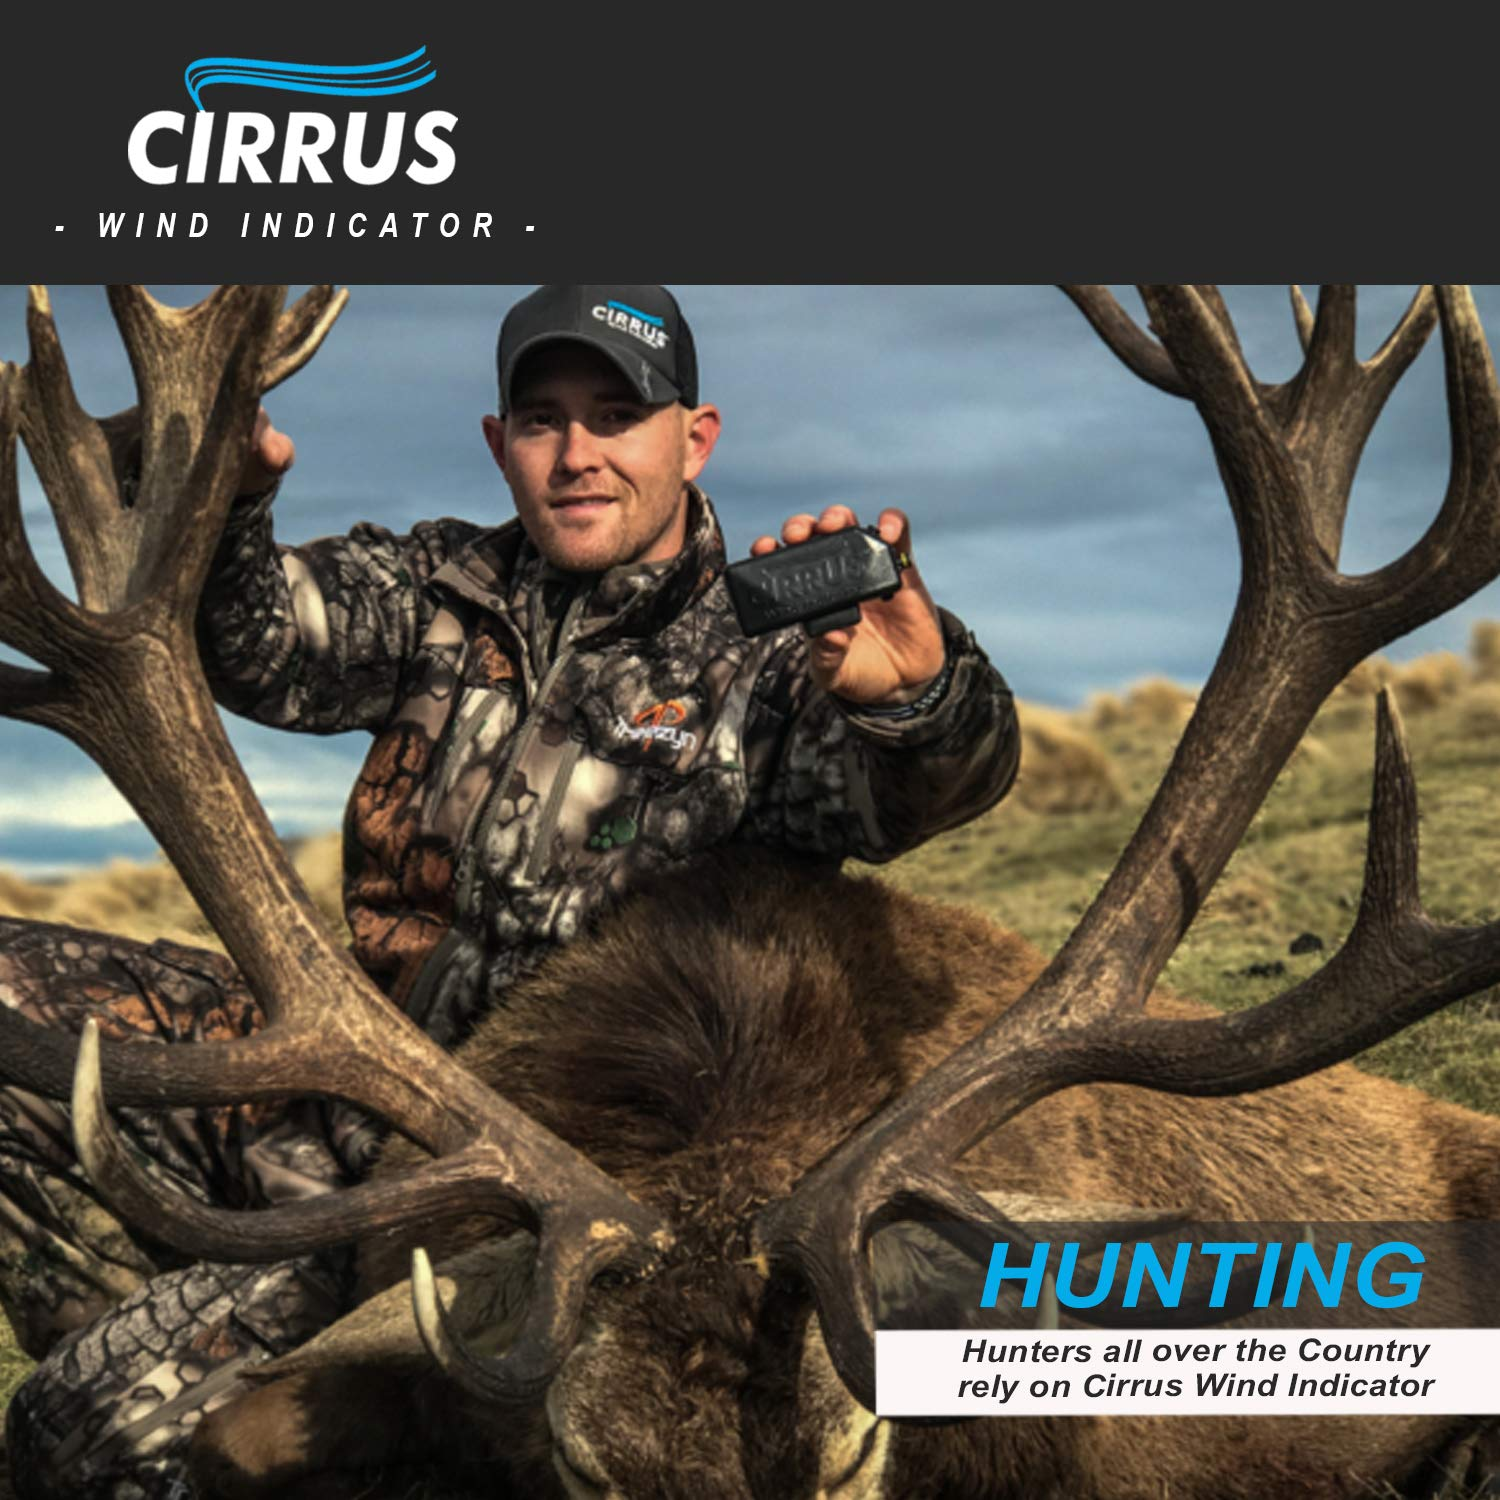 Cirrus Wind Indicator for Hunting - The Perfect Wind Checker Alternative to Messy Powder by Cirrus (Image #7)